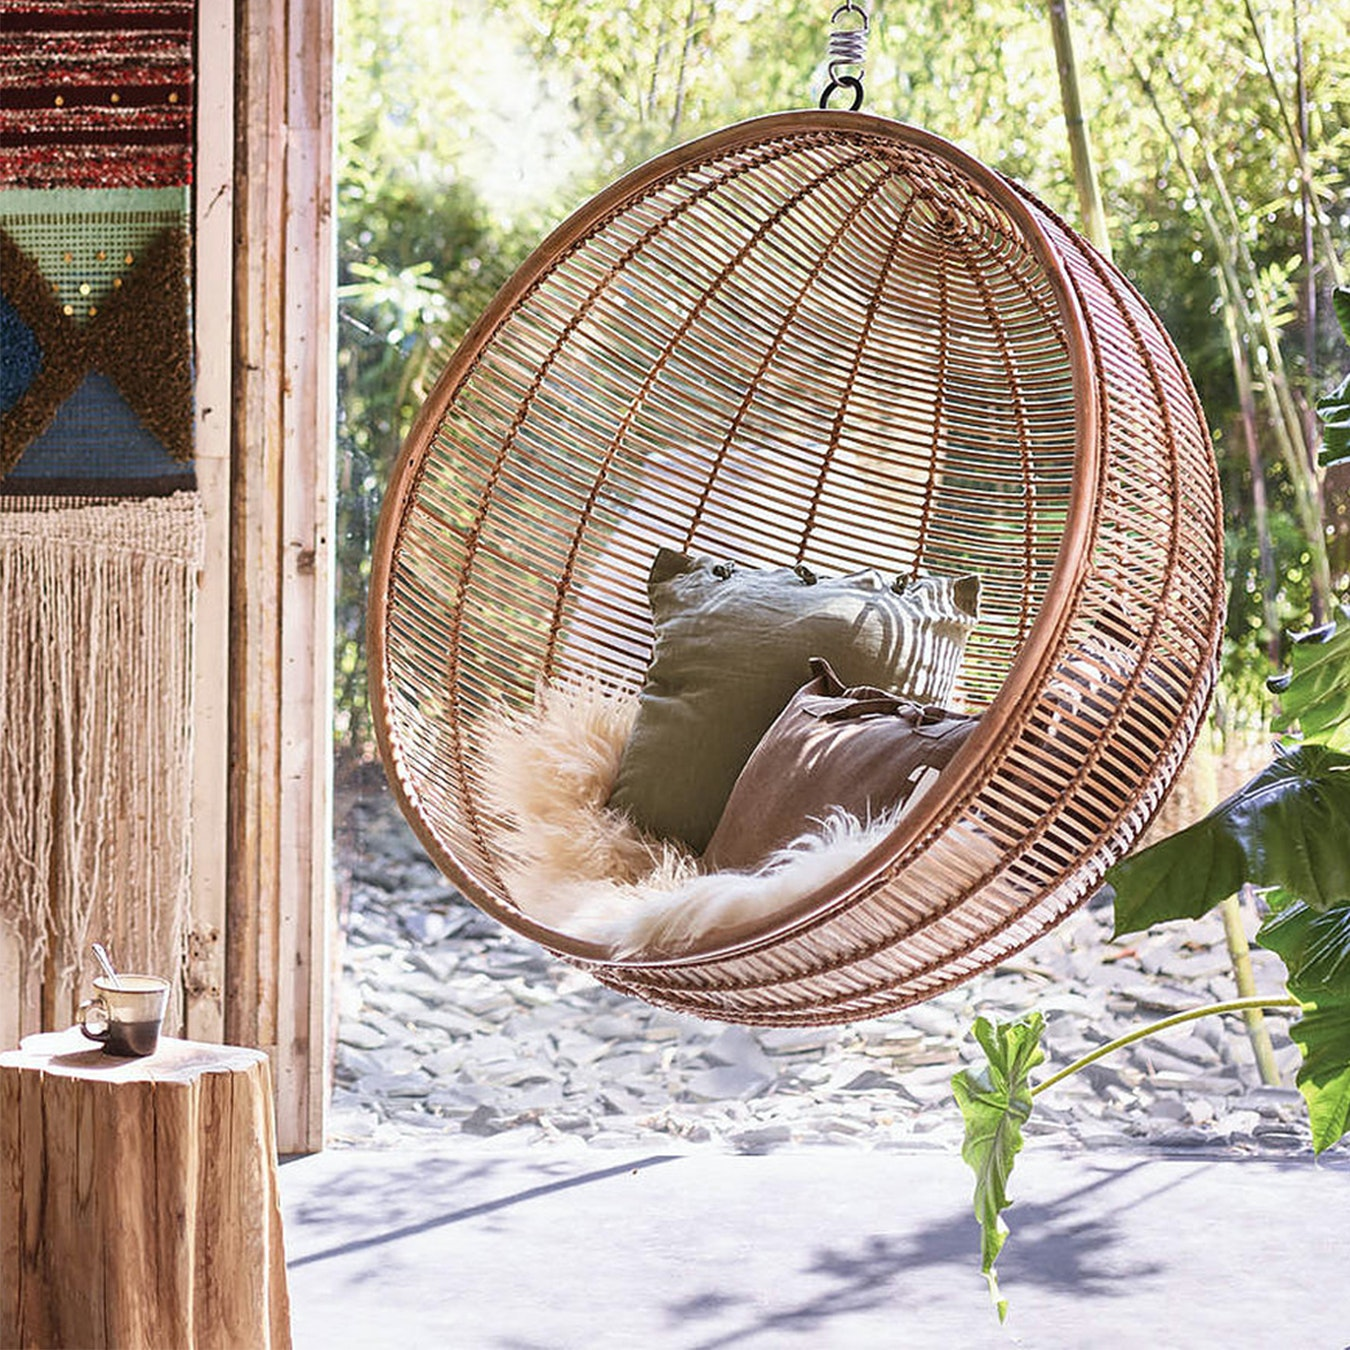 Bali Rattan Hanging Nest Ball Chair Natural By Ciel Fy